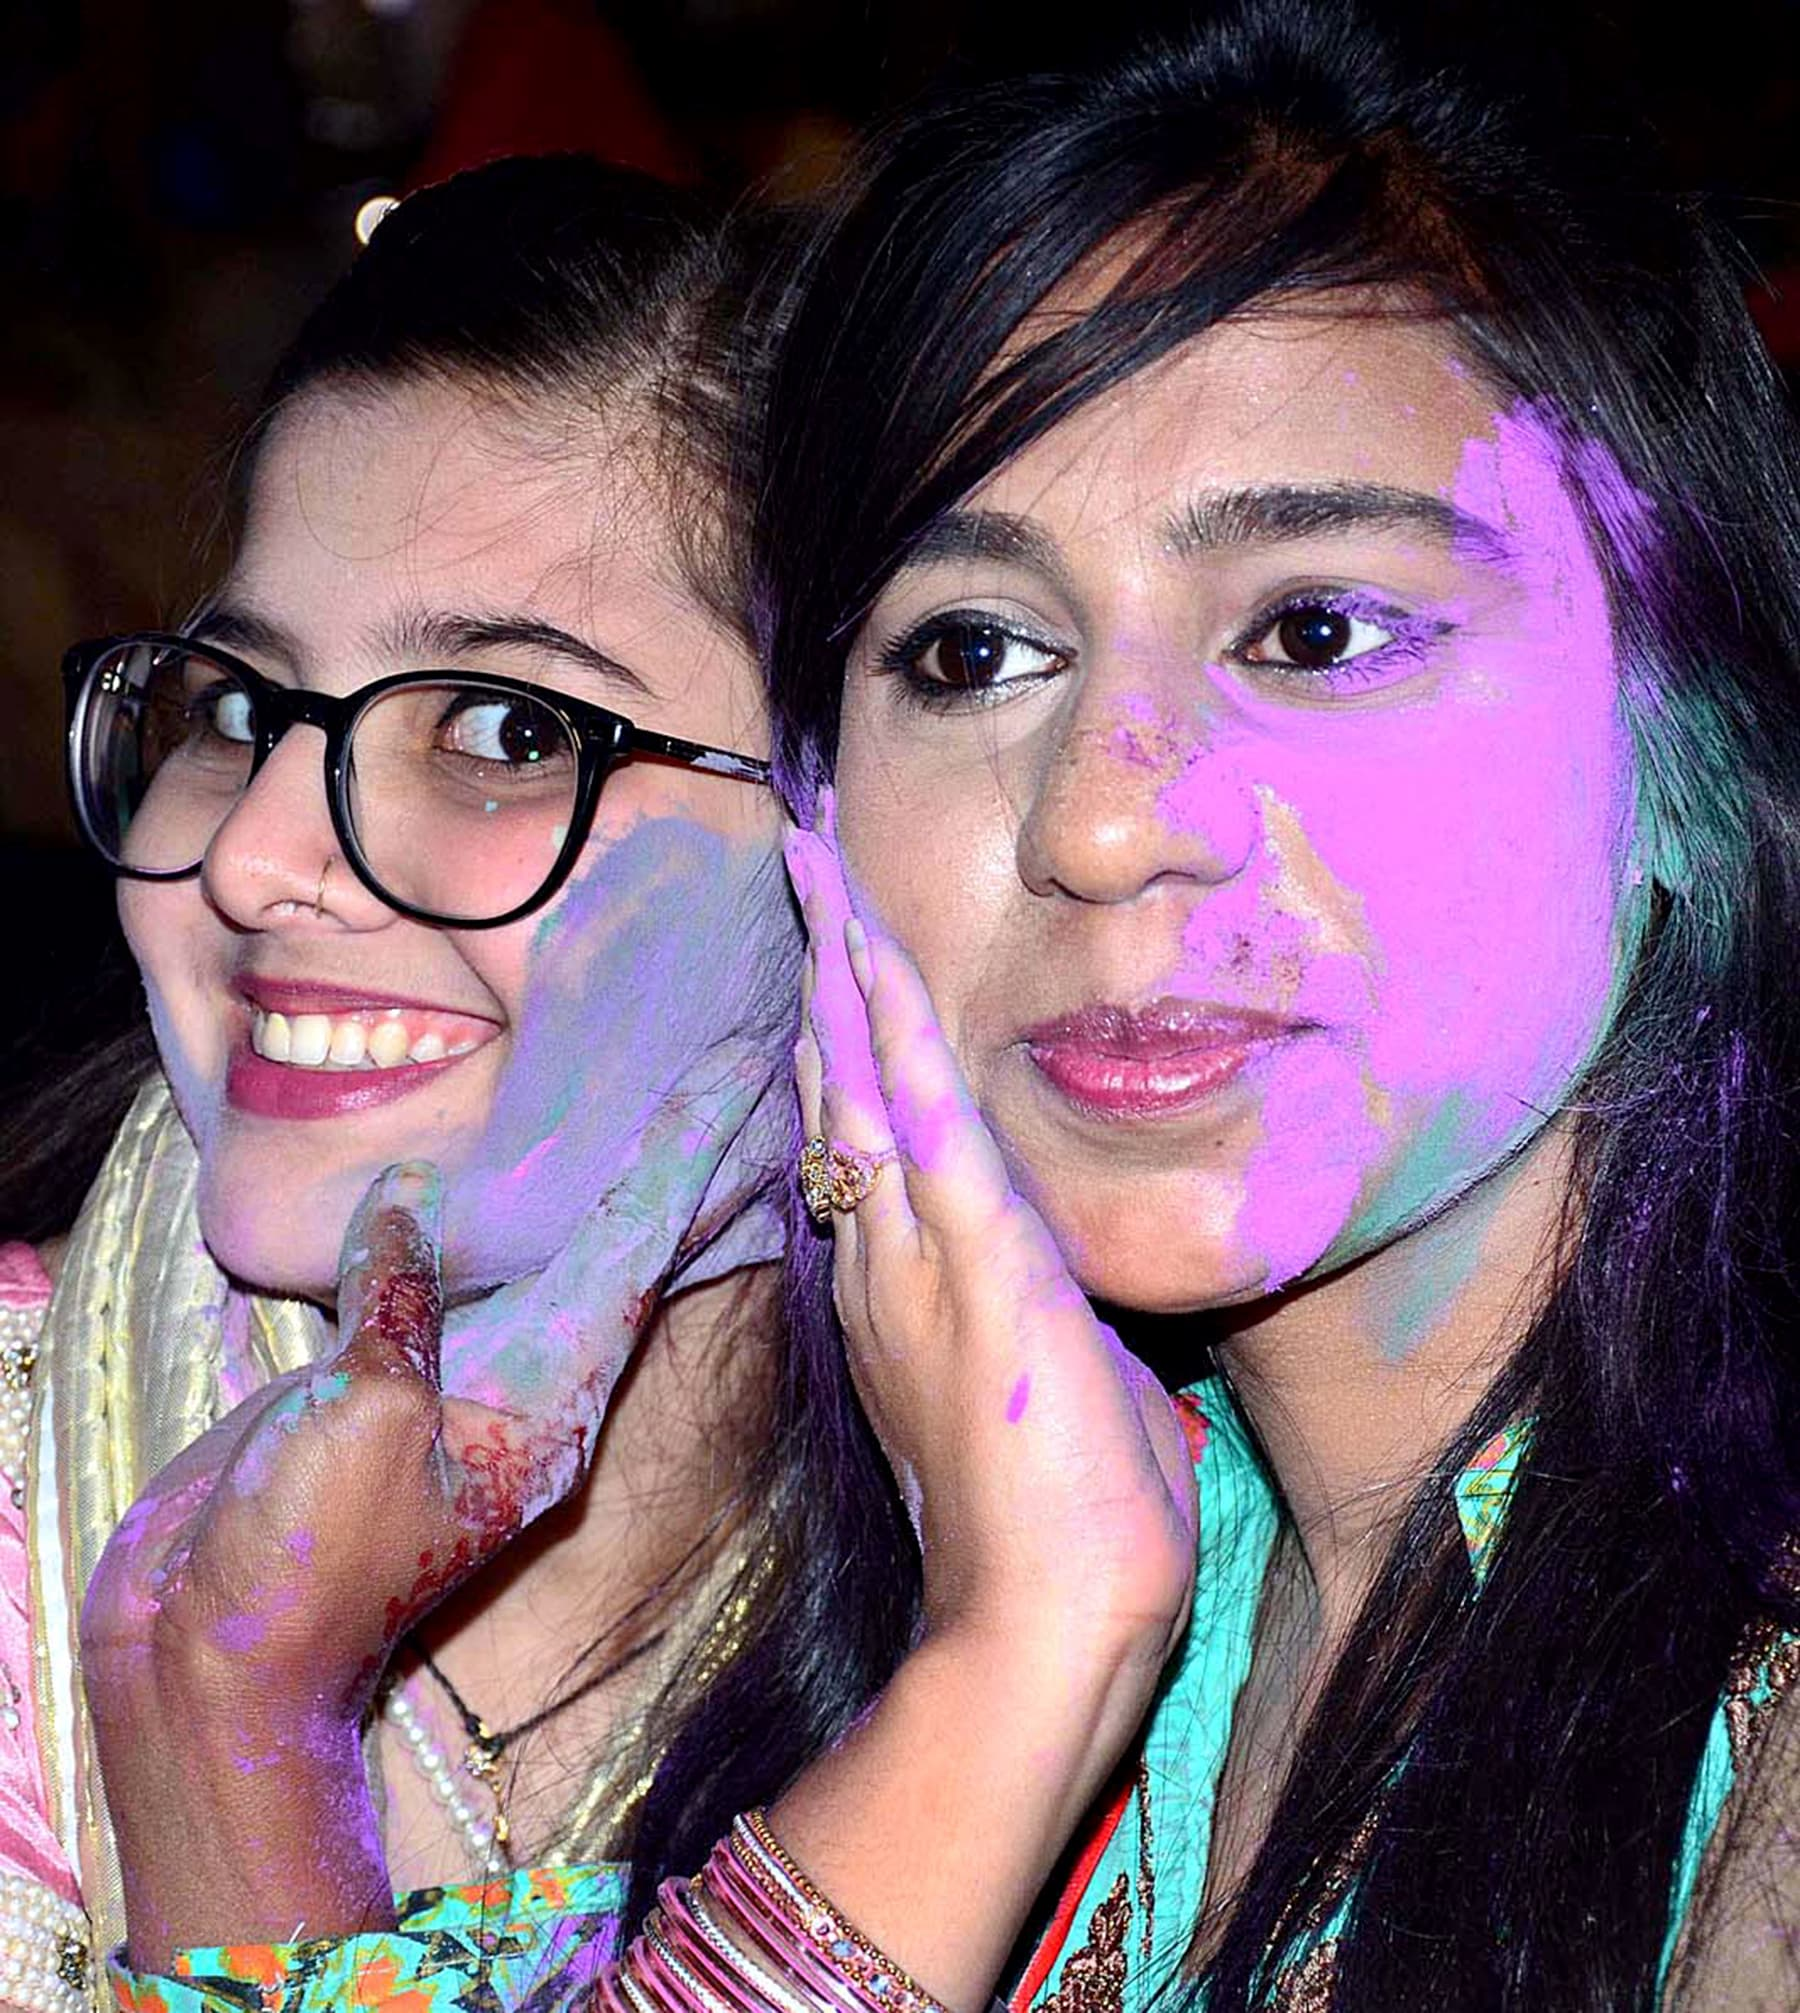 Girls pose for a photo after smearing each other's faces with paint in Hyderabad, Pakistan, on March 20, 2019. — APP